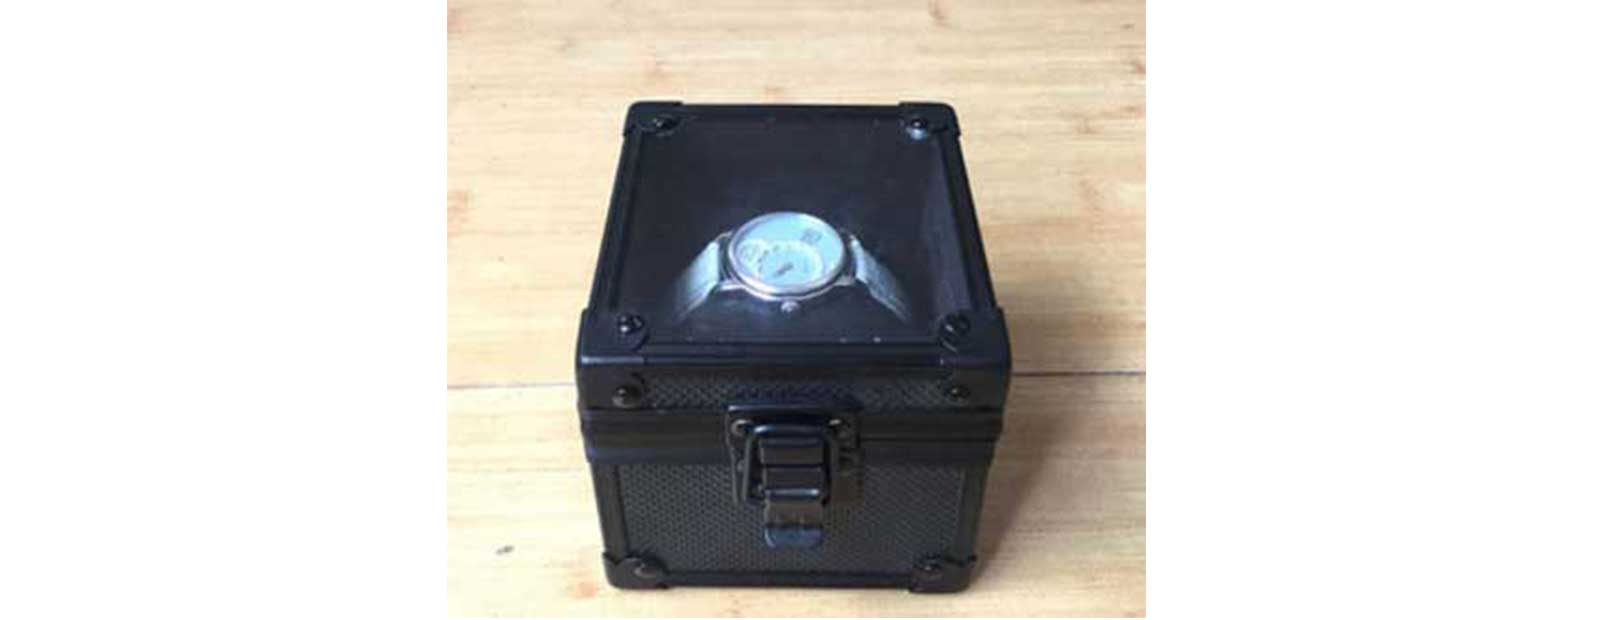 black aluminum watch case with pillow inside